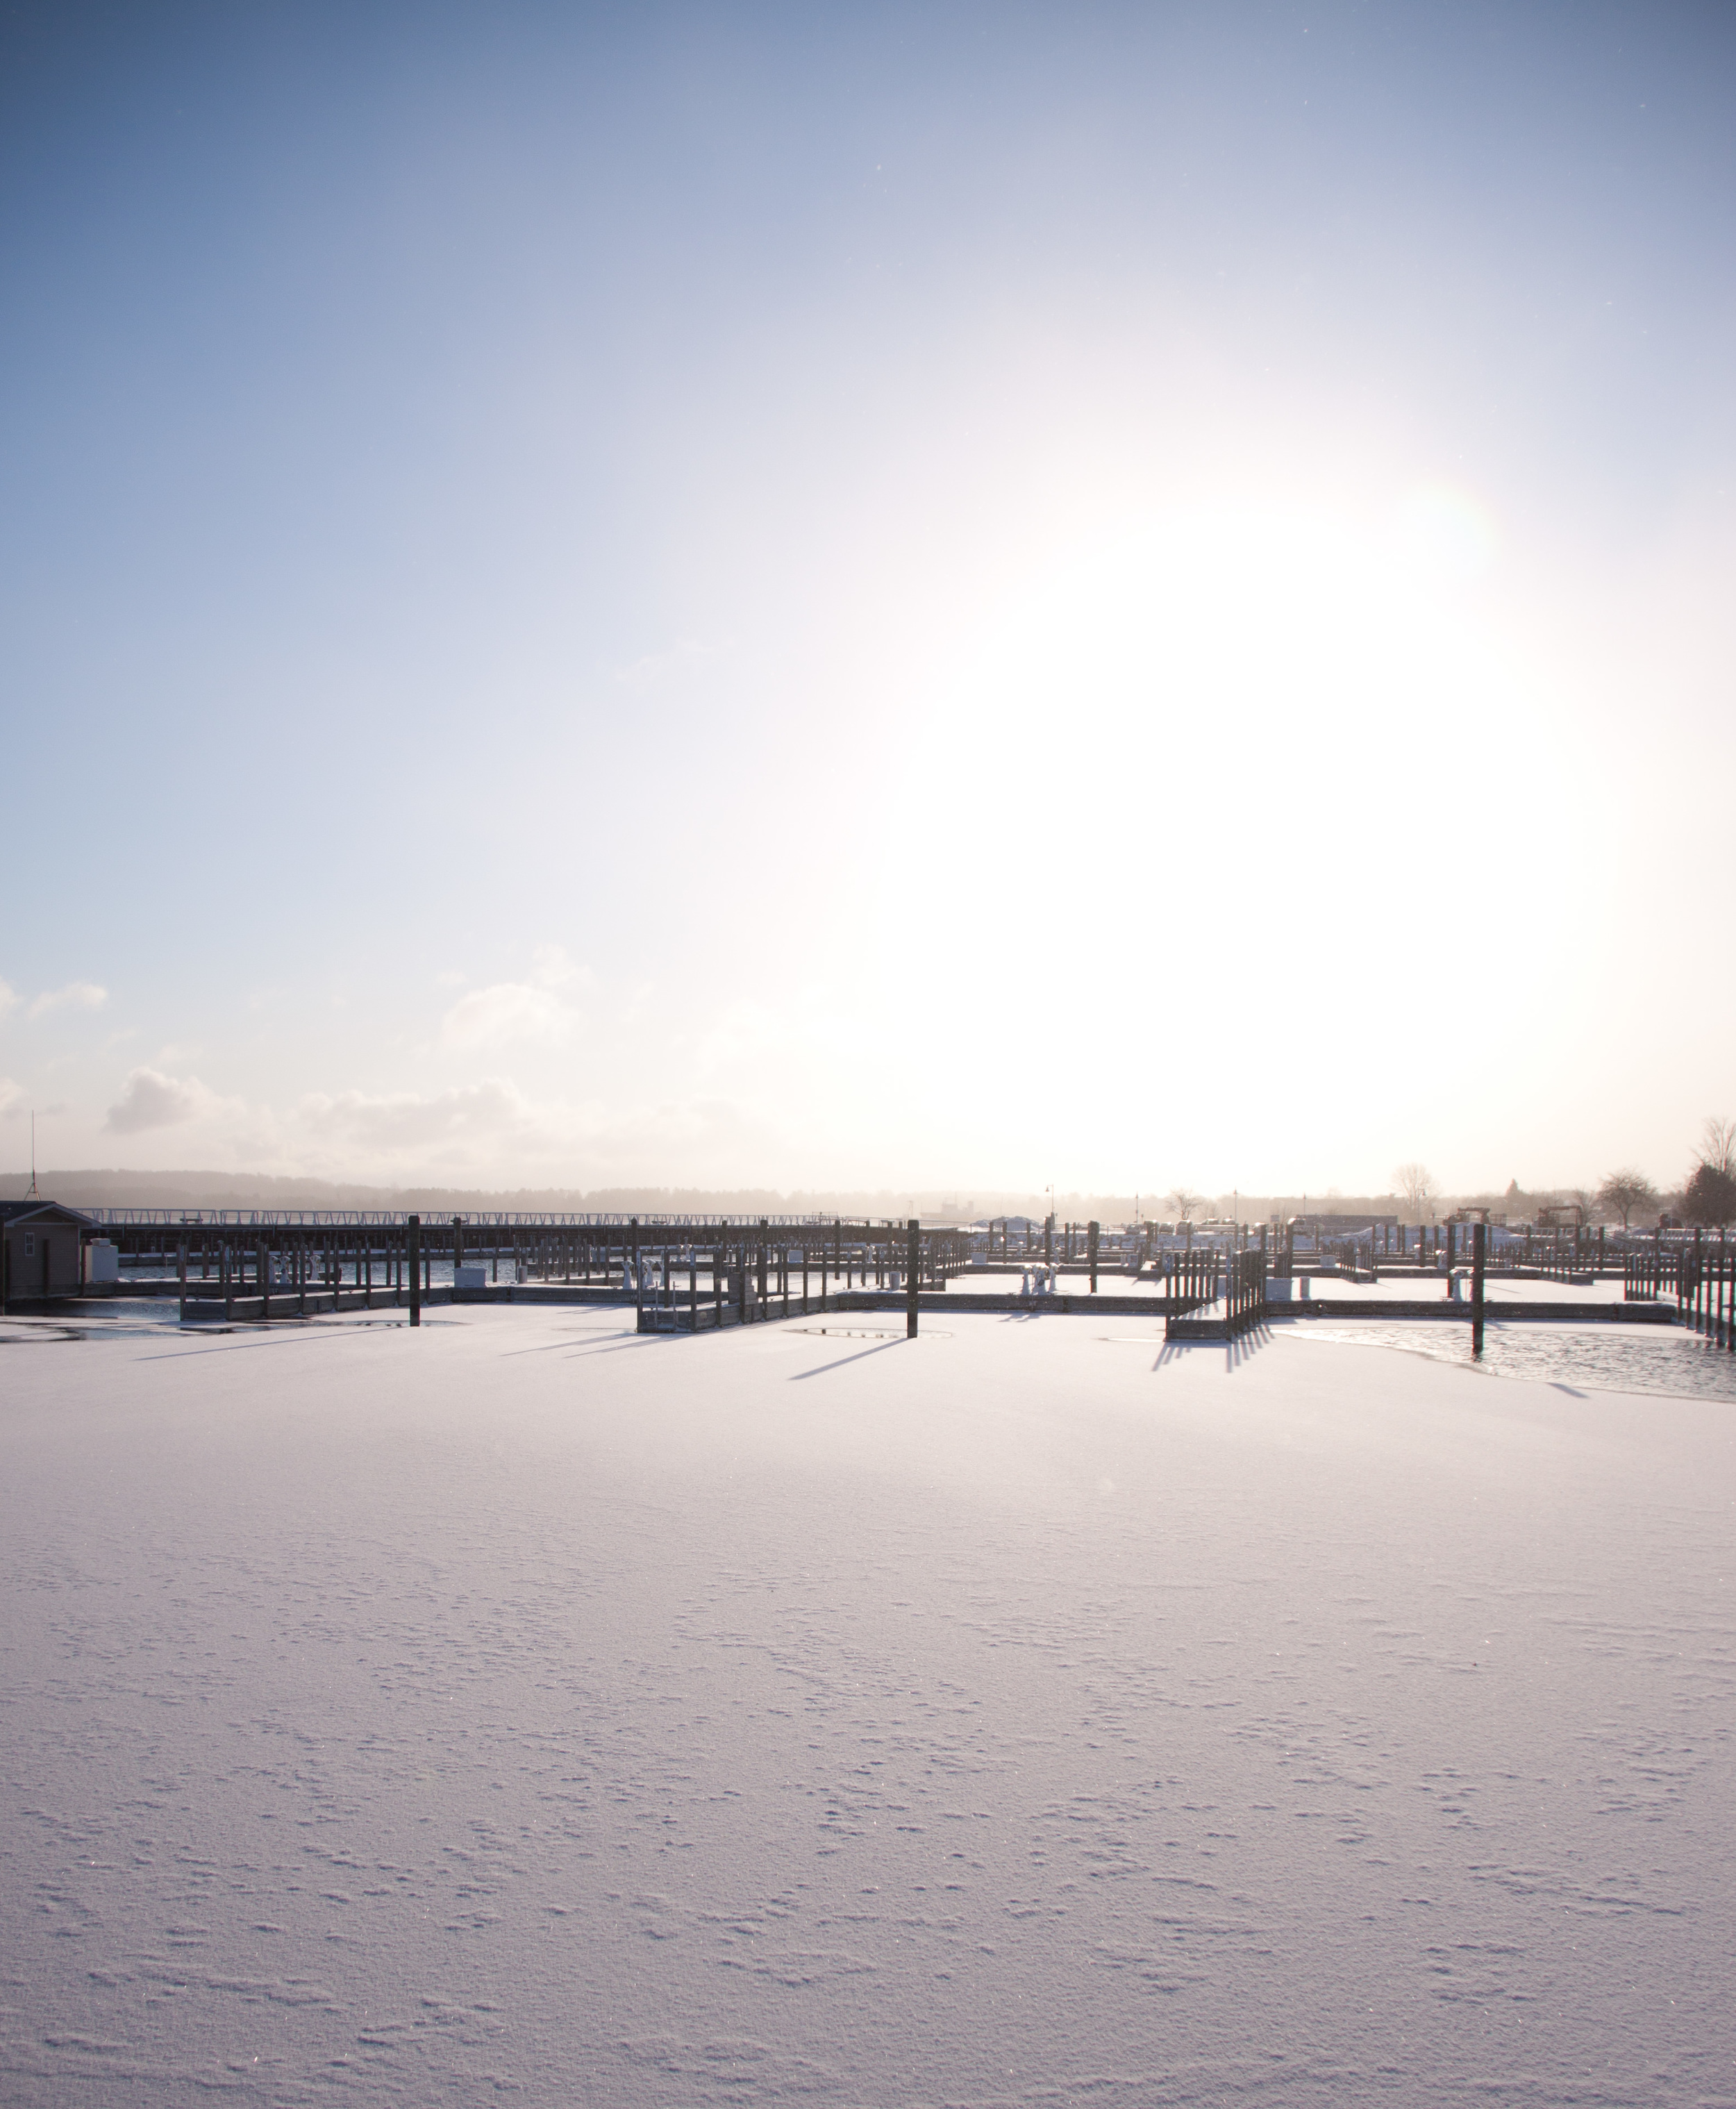 snow in the harbor